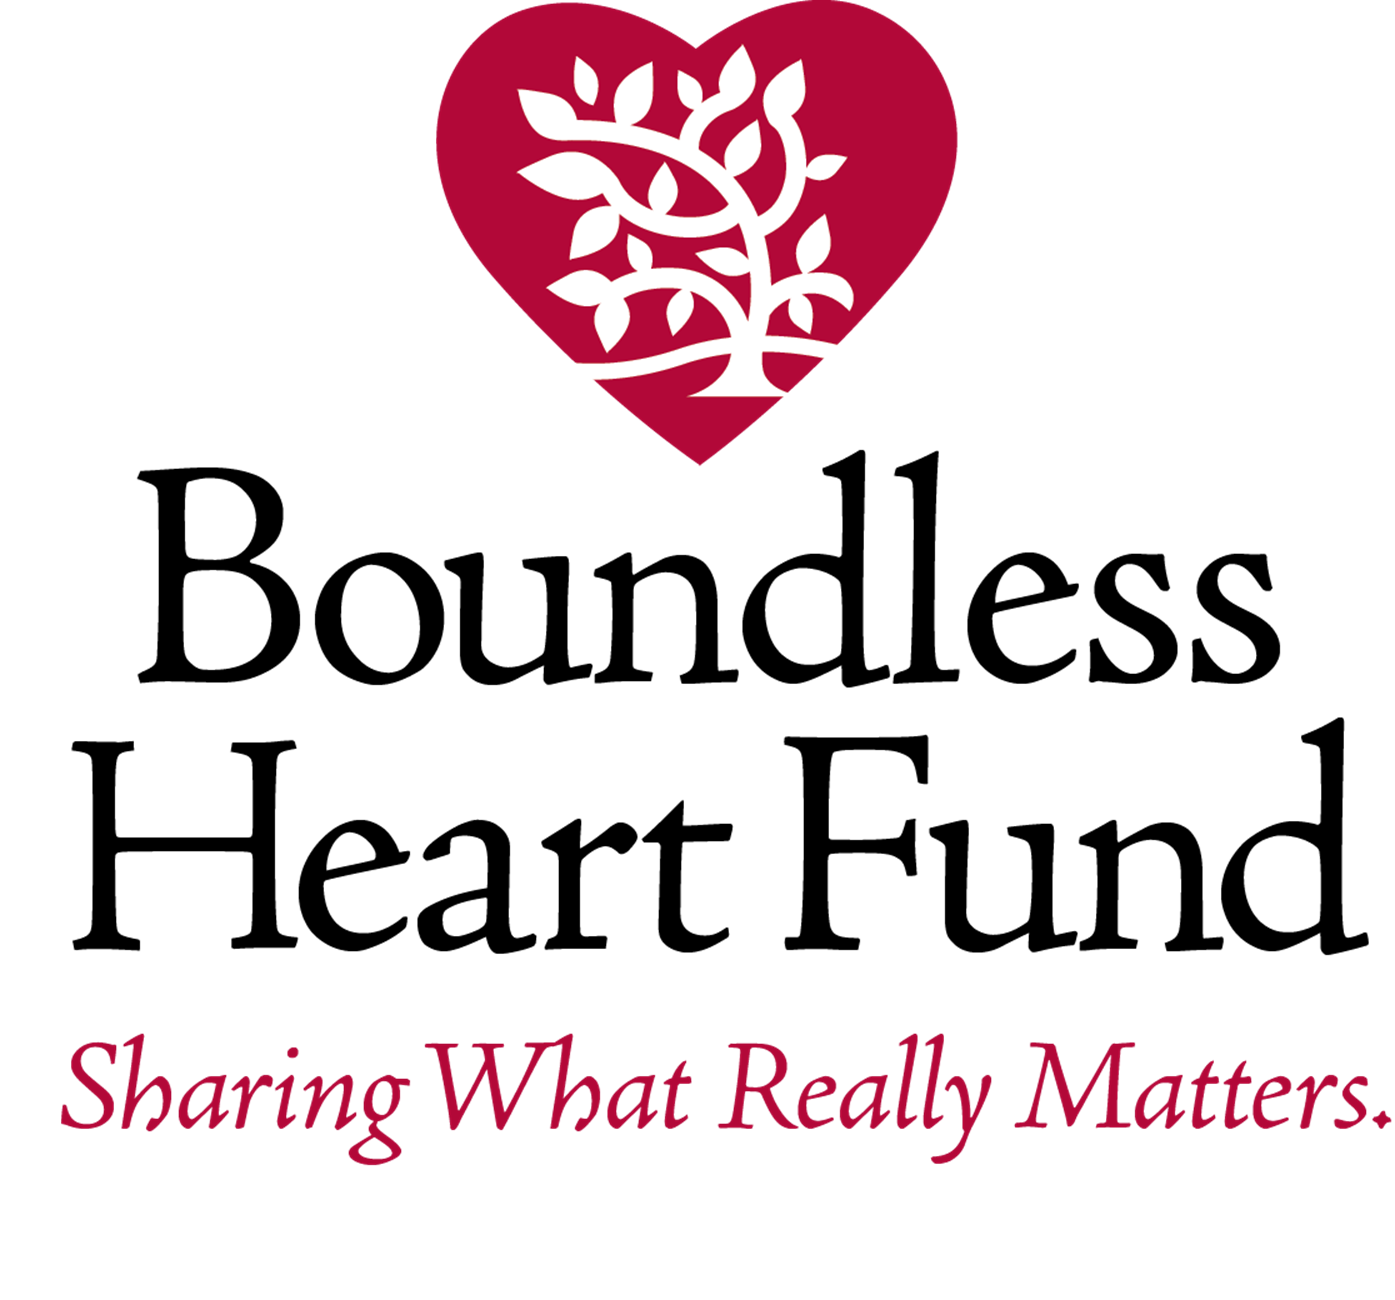 boundless_heart_logo.png